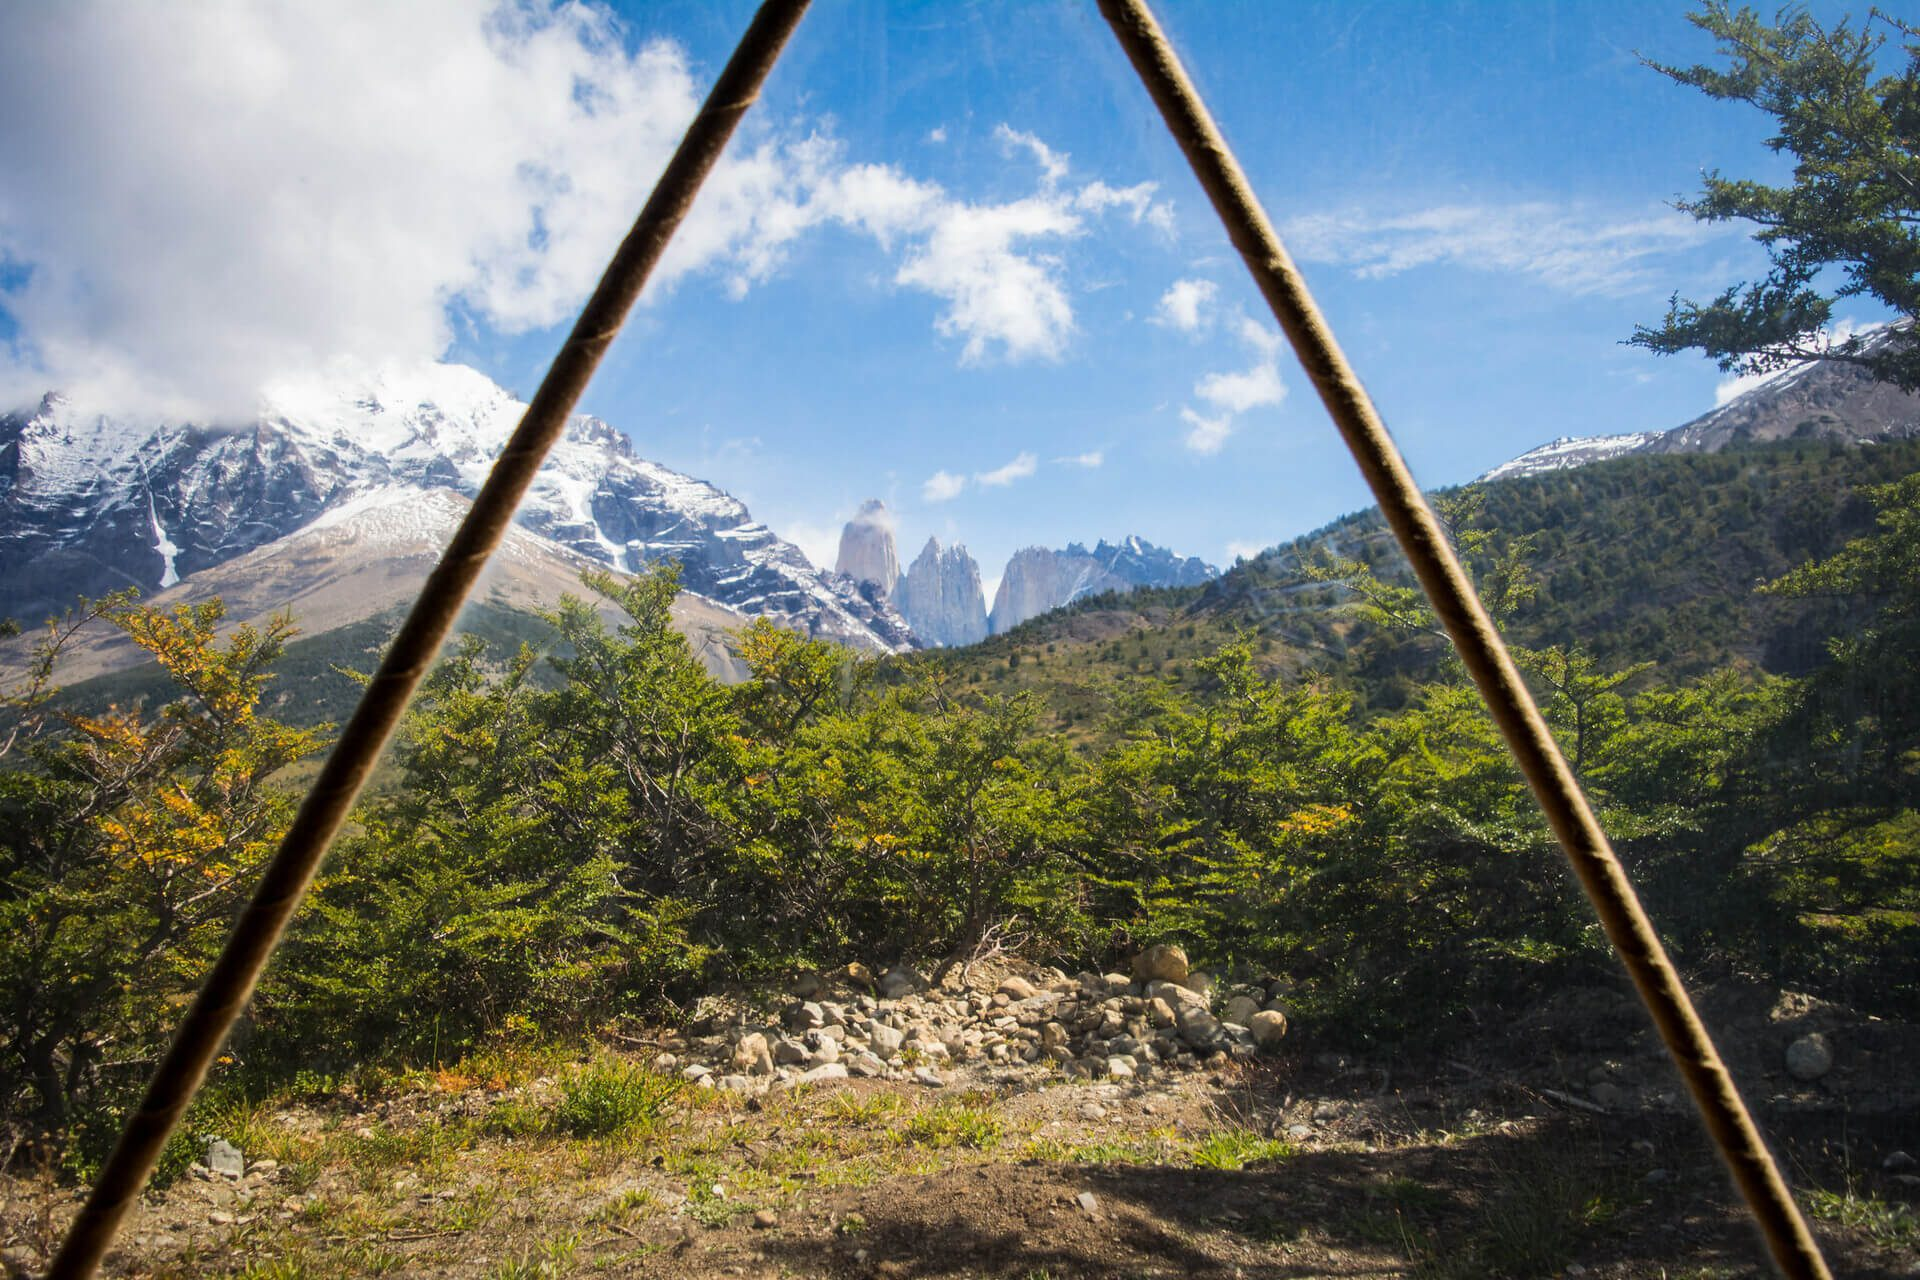 view from dome tent with mountains and blue sky on Argentina & Chile trip